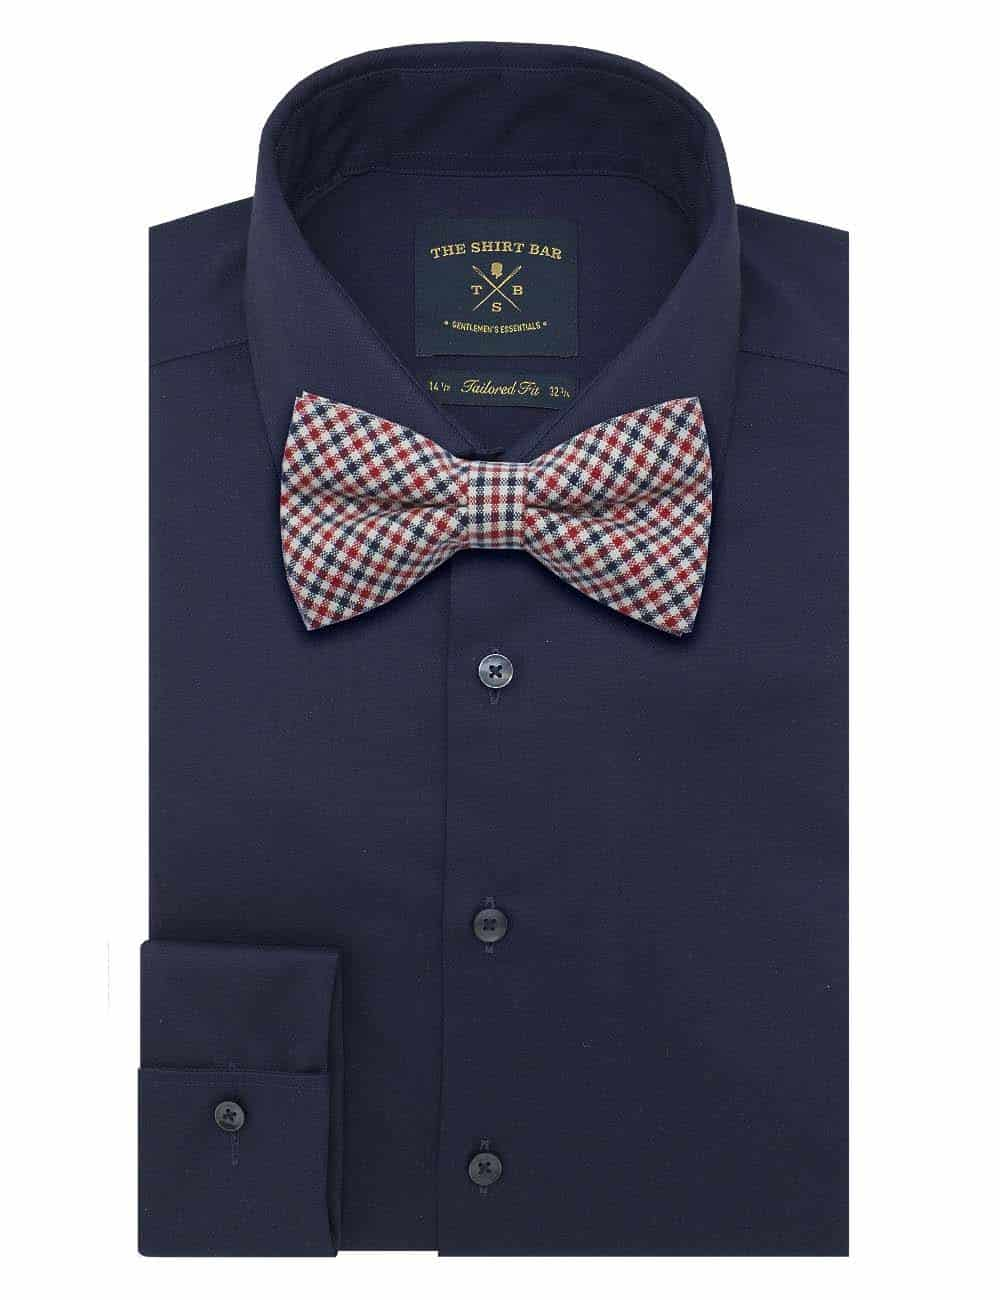 Ecru/ Black/ Red Mini Checks Woven Bowtie WBT48.8